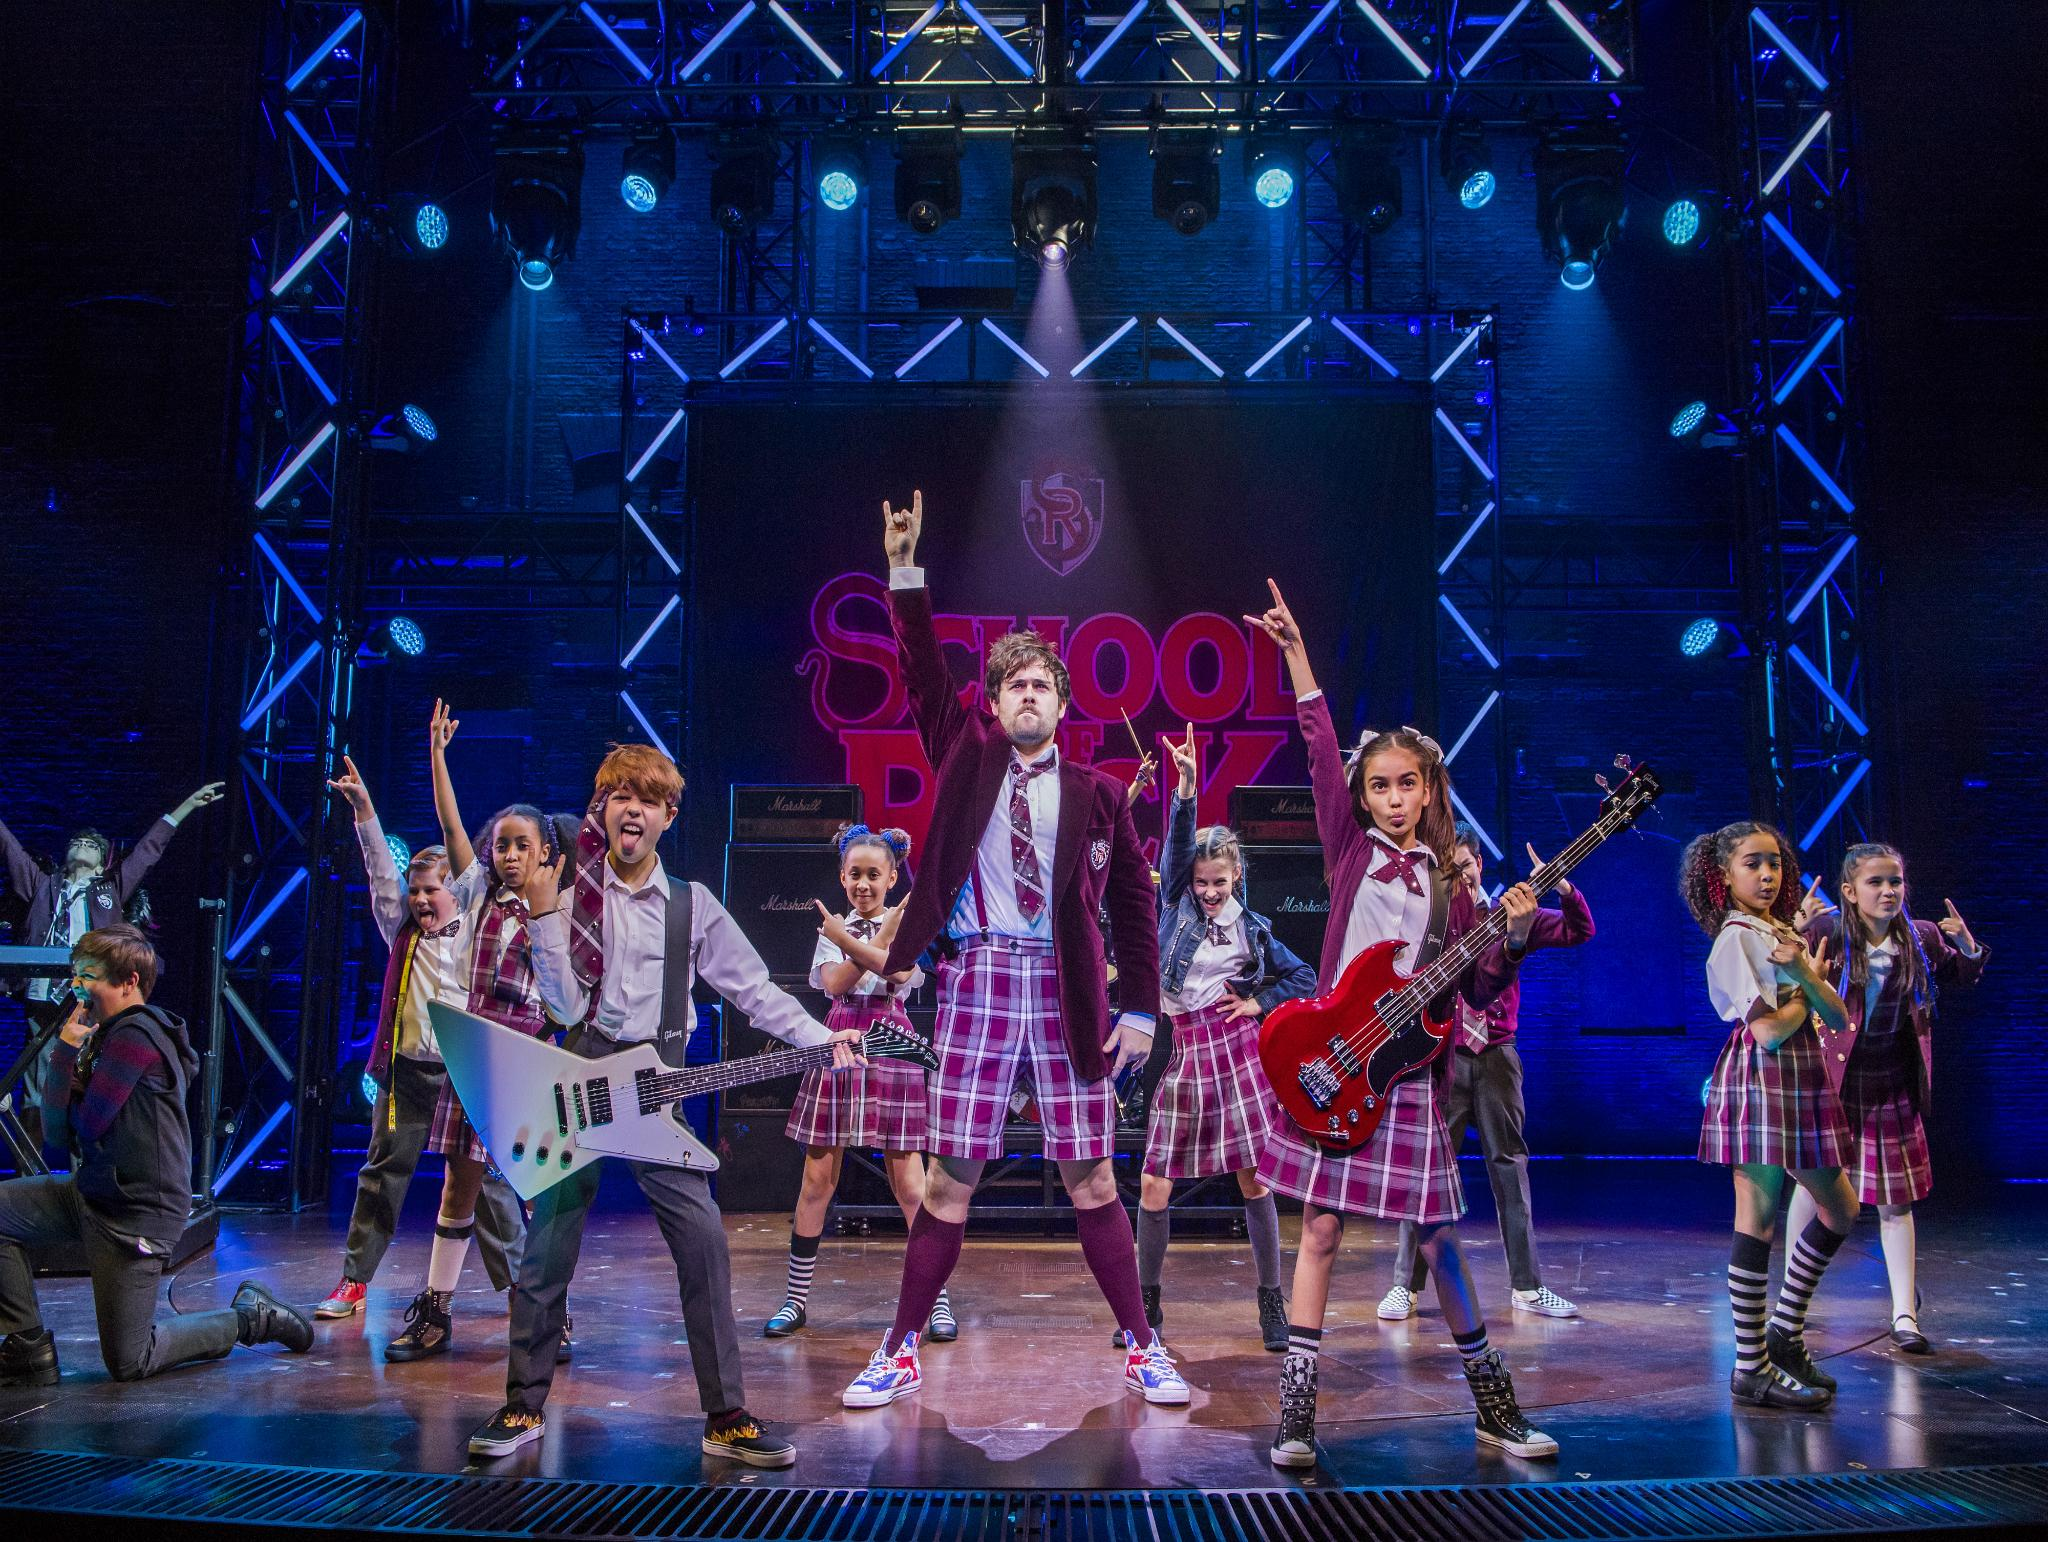 School of rock the musical new london theatre london review a ridiculously entertaining new show the independent